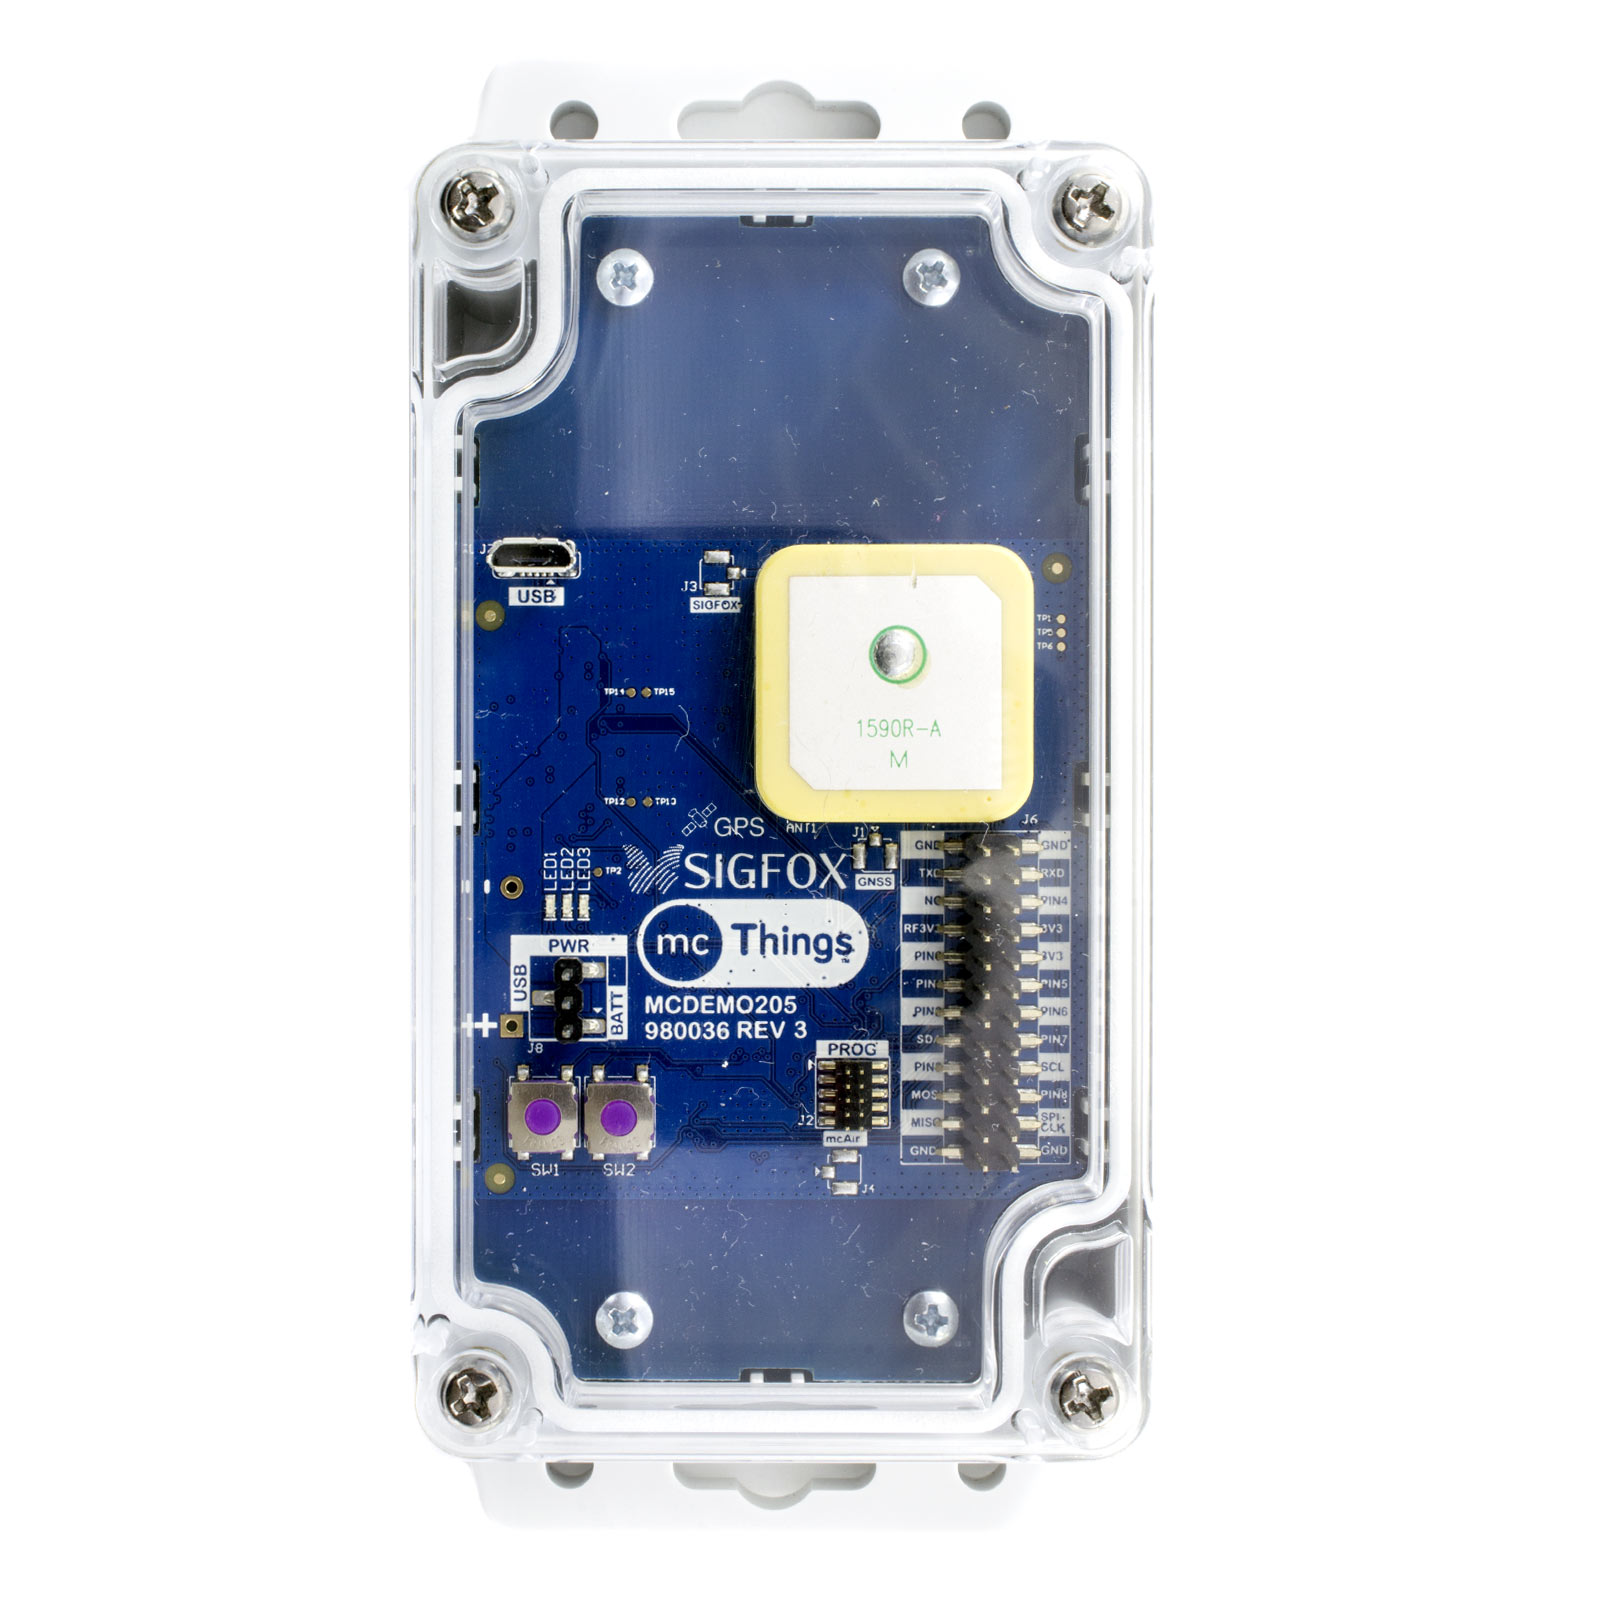 mcDemo205 Internet of Things Asset Tracking Device